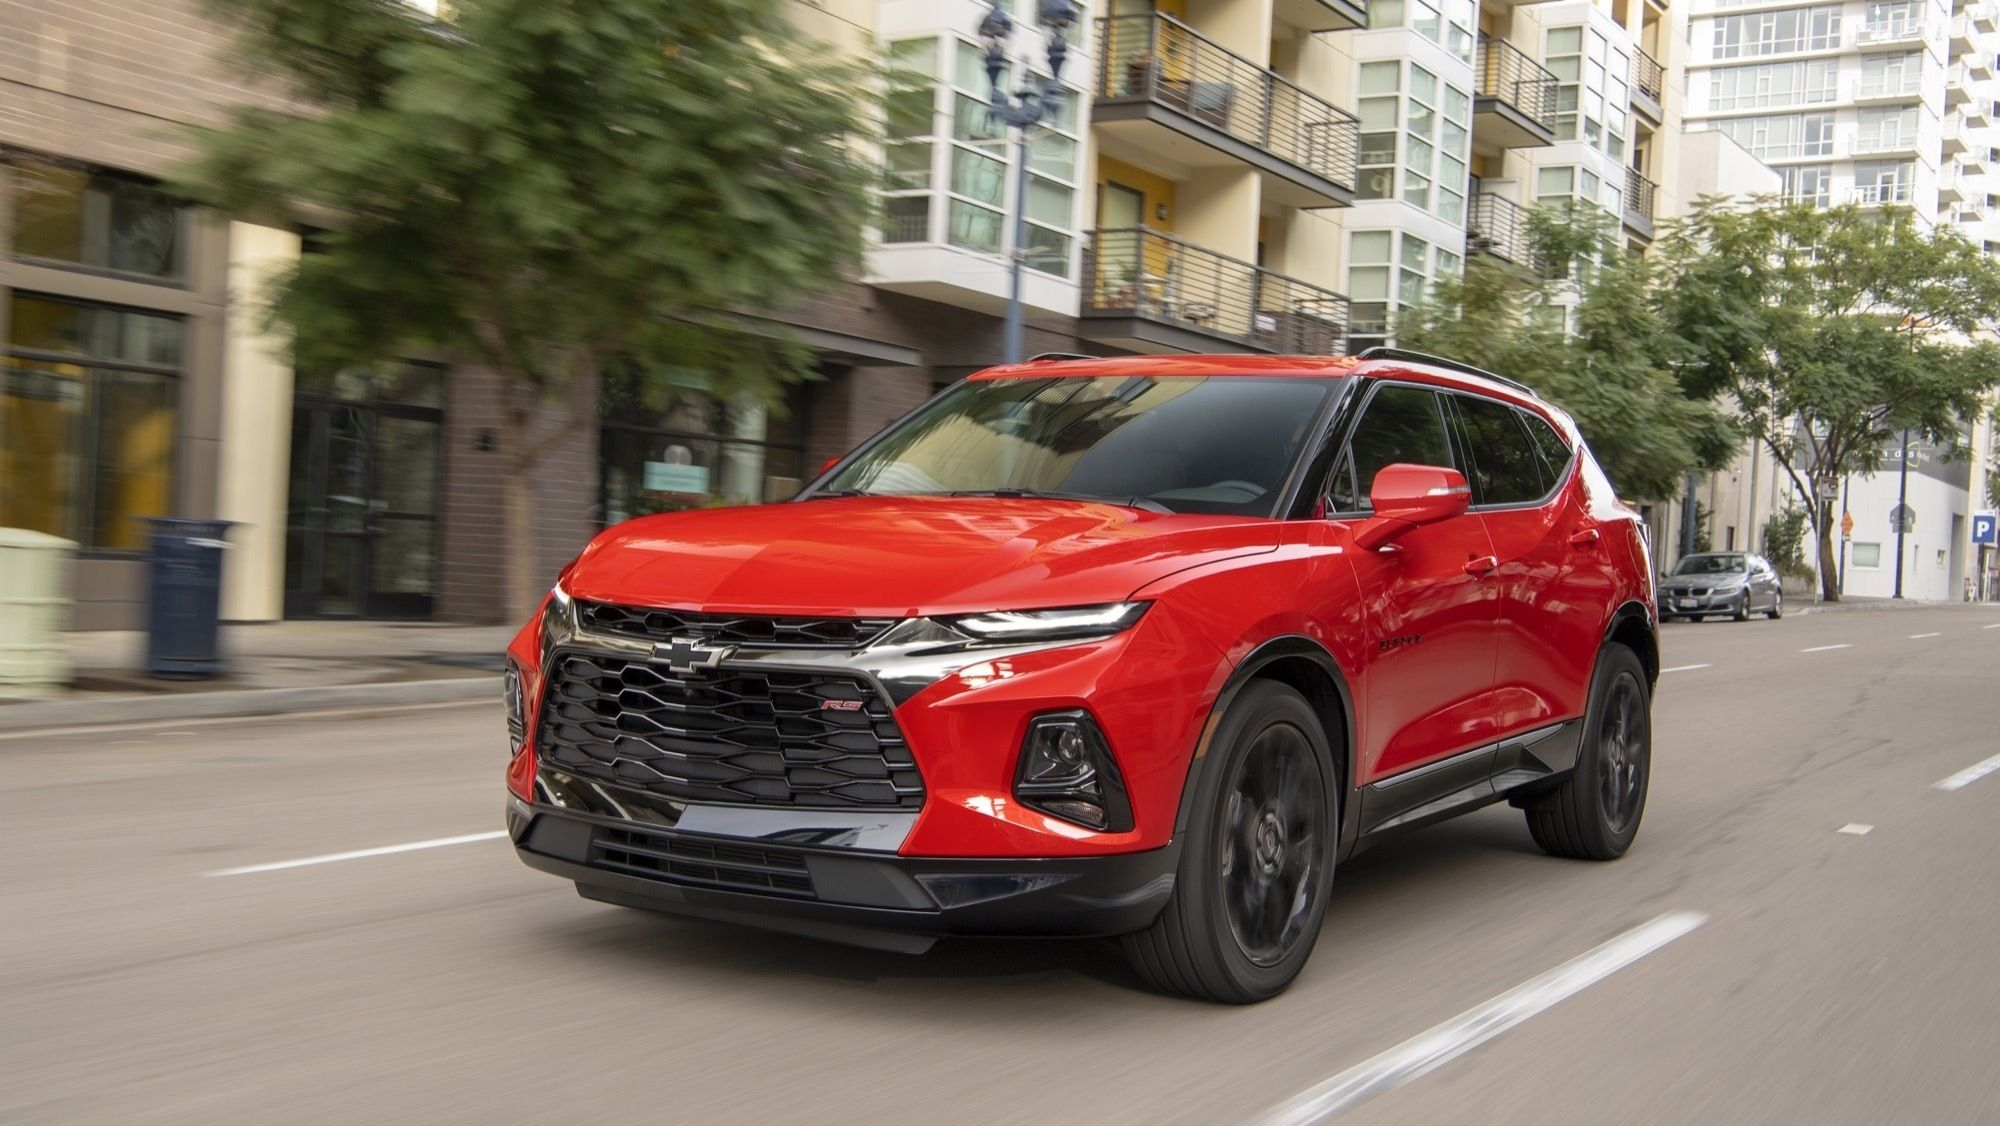 2020 Chevy Blazer Review In 2020 Chevrolet Trailblazer Chevrolet Blazer Chevrolet